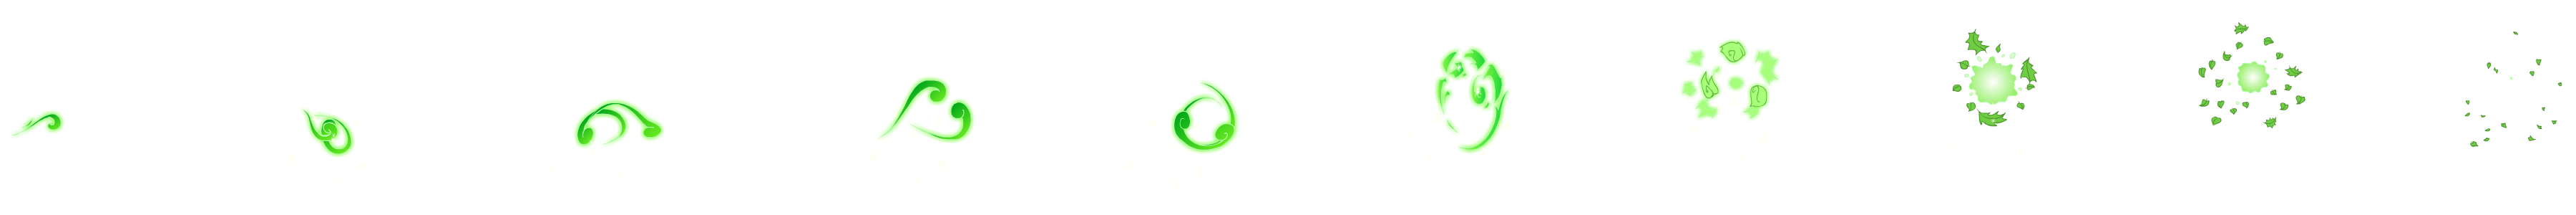 https://images.neopets.com/bd2/items/ranged/blast_earth.png